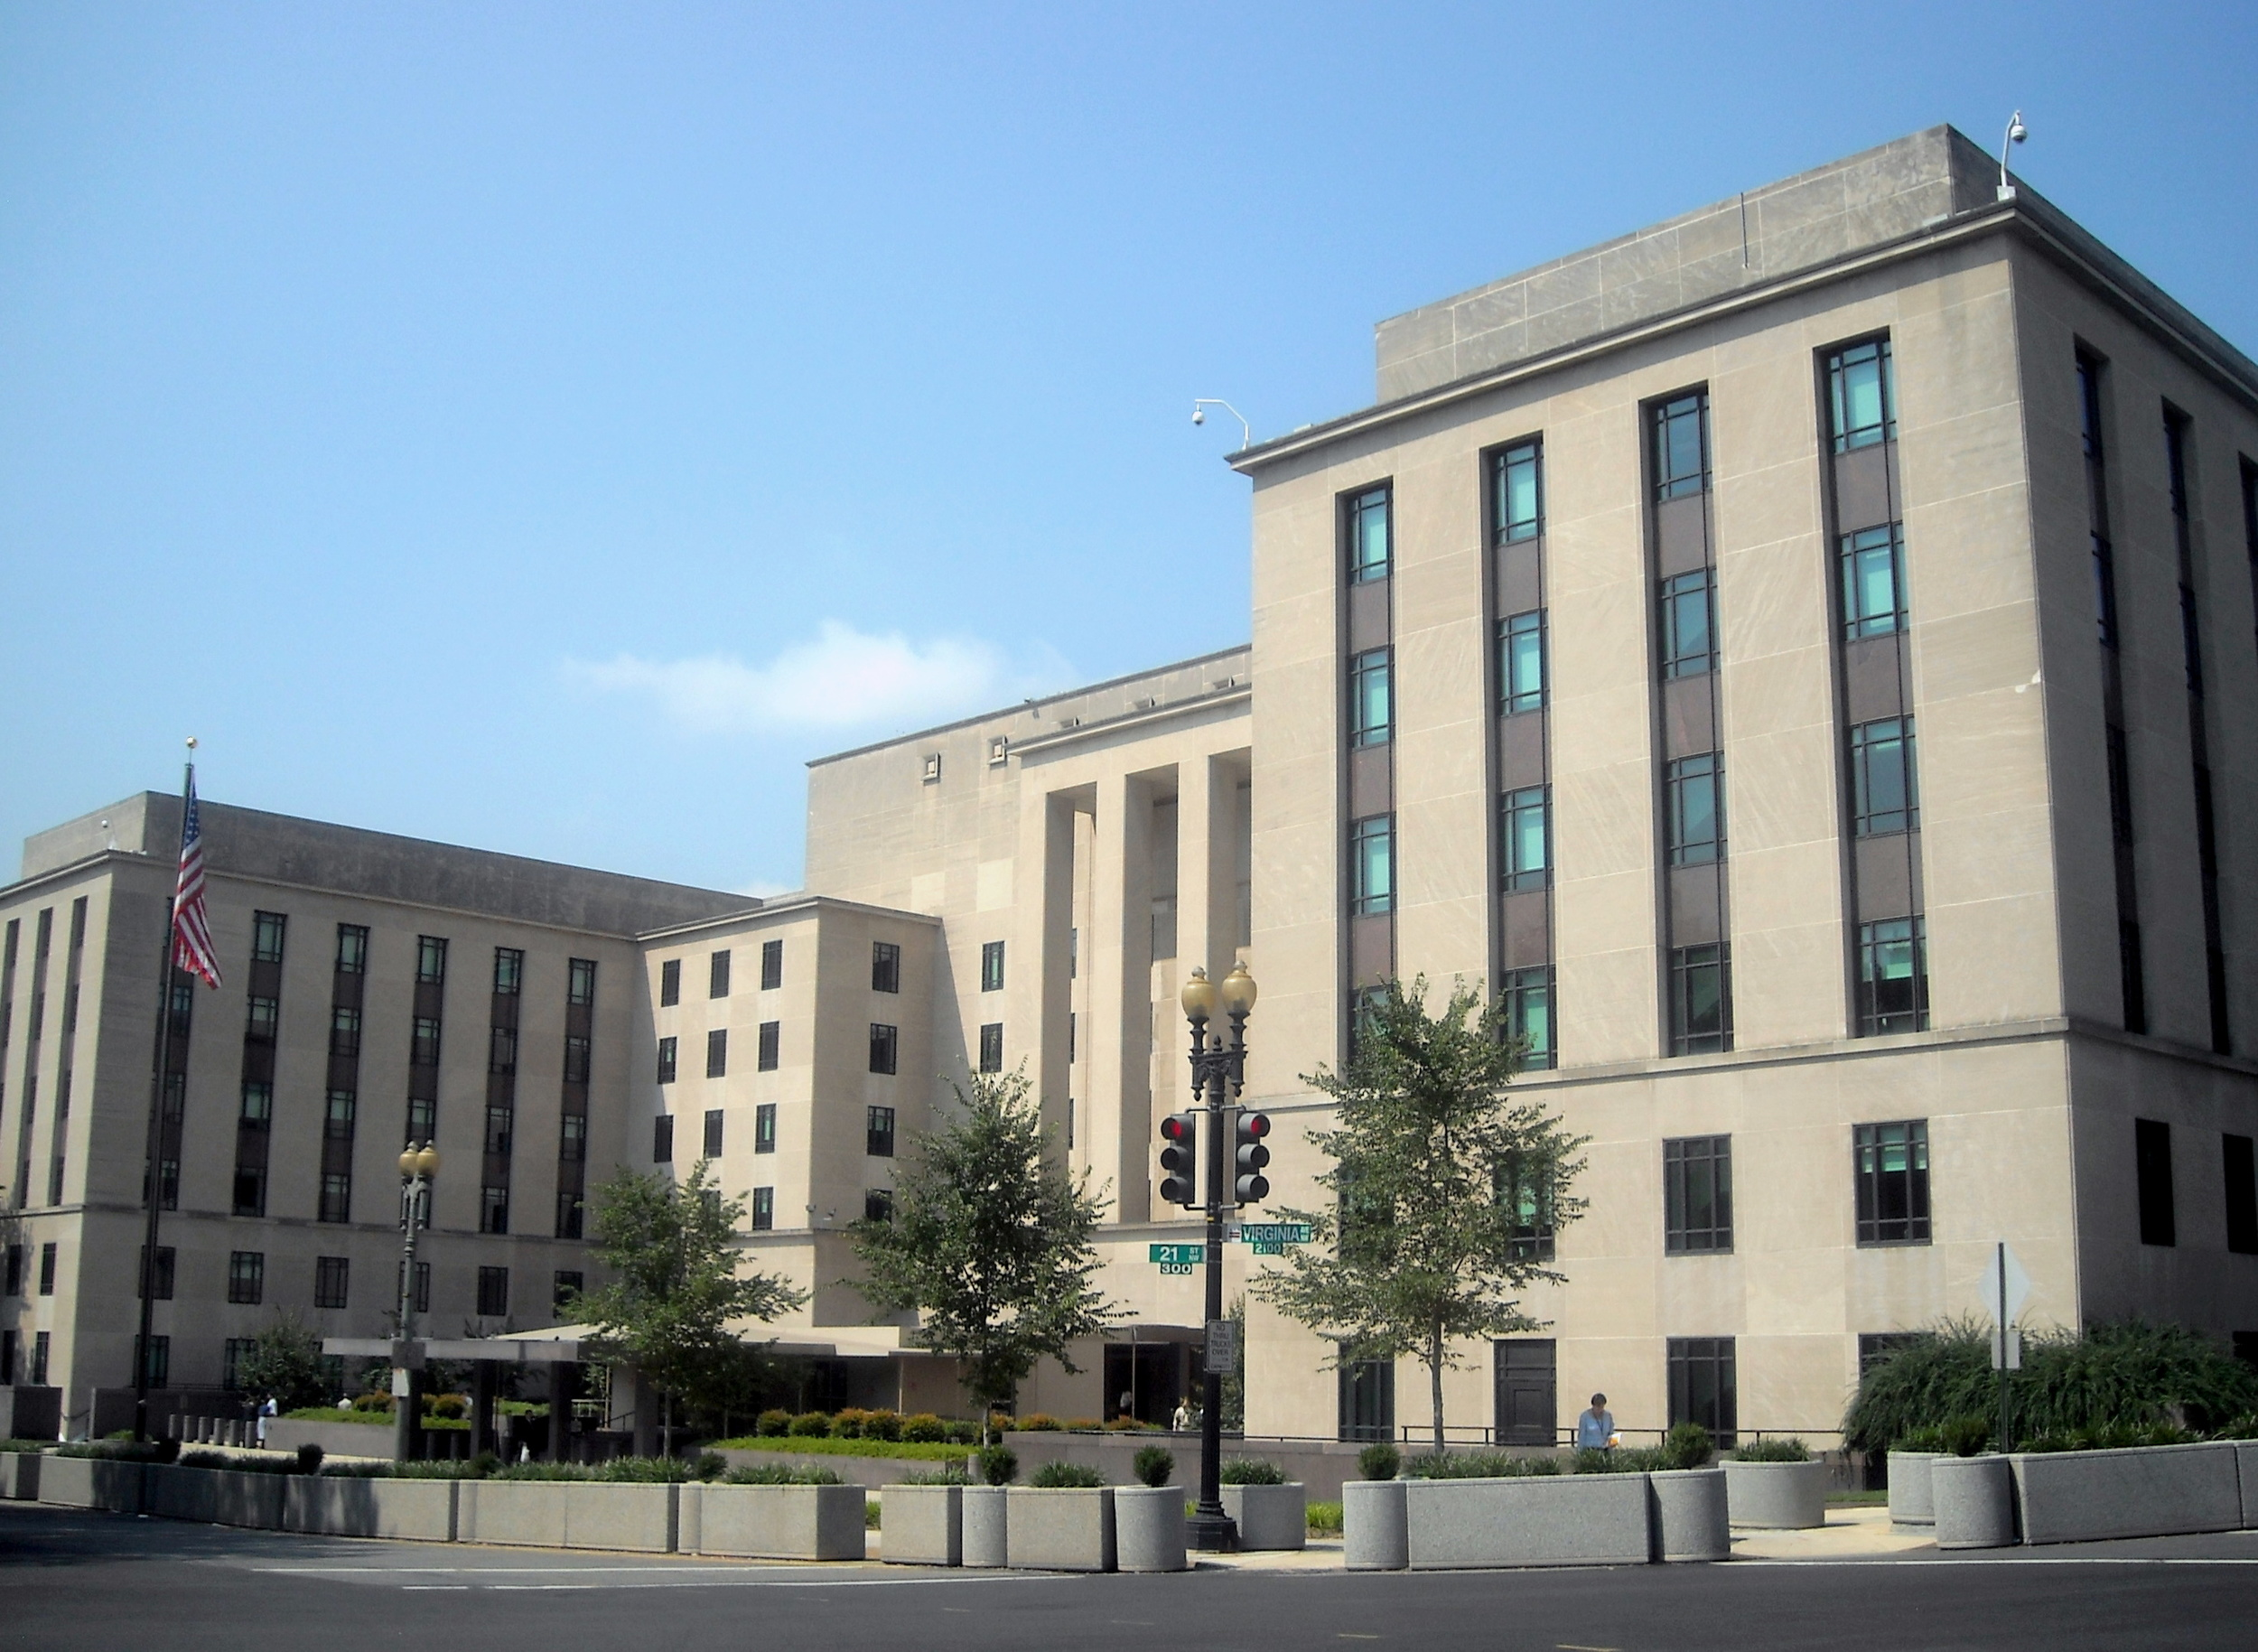 U.S. State Department's Truman Building. Credit: Wikimedia Commons.